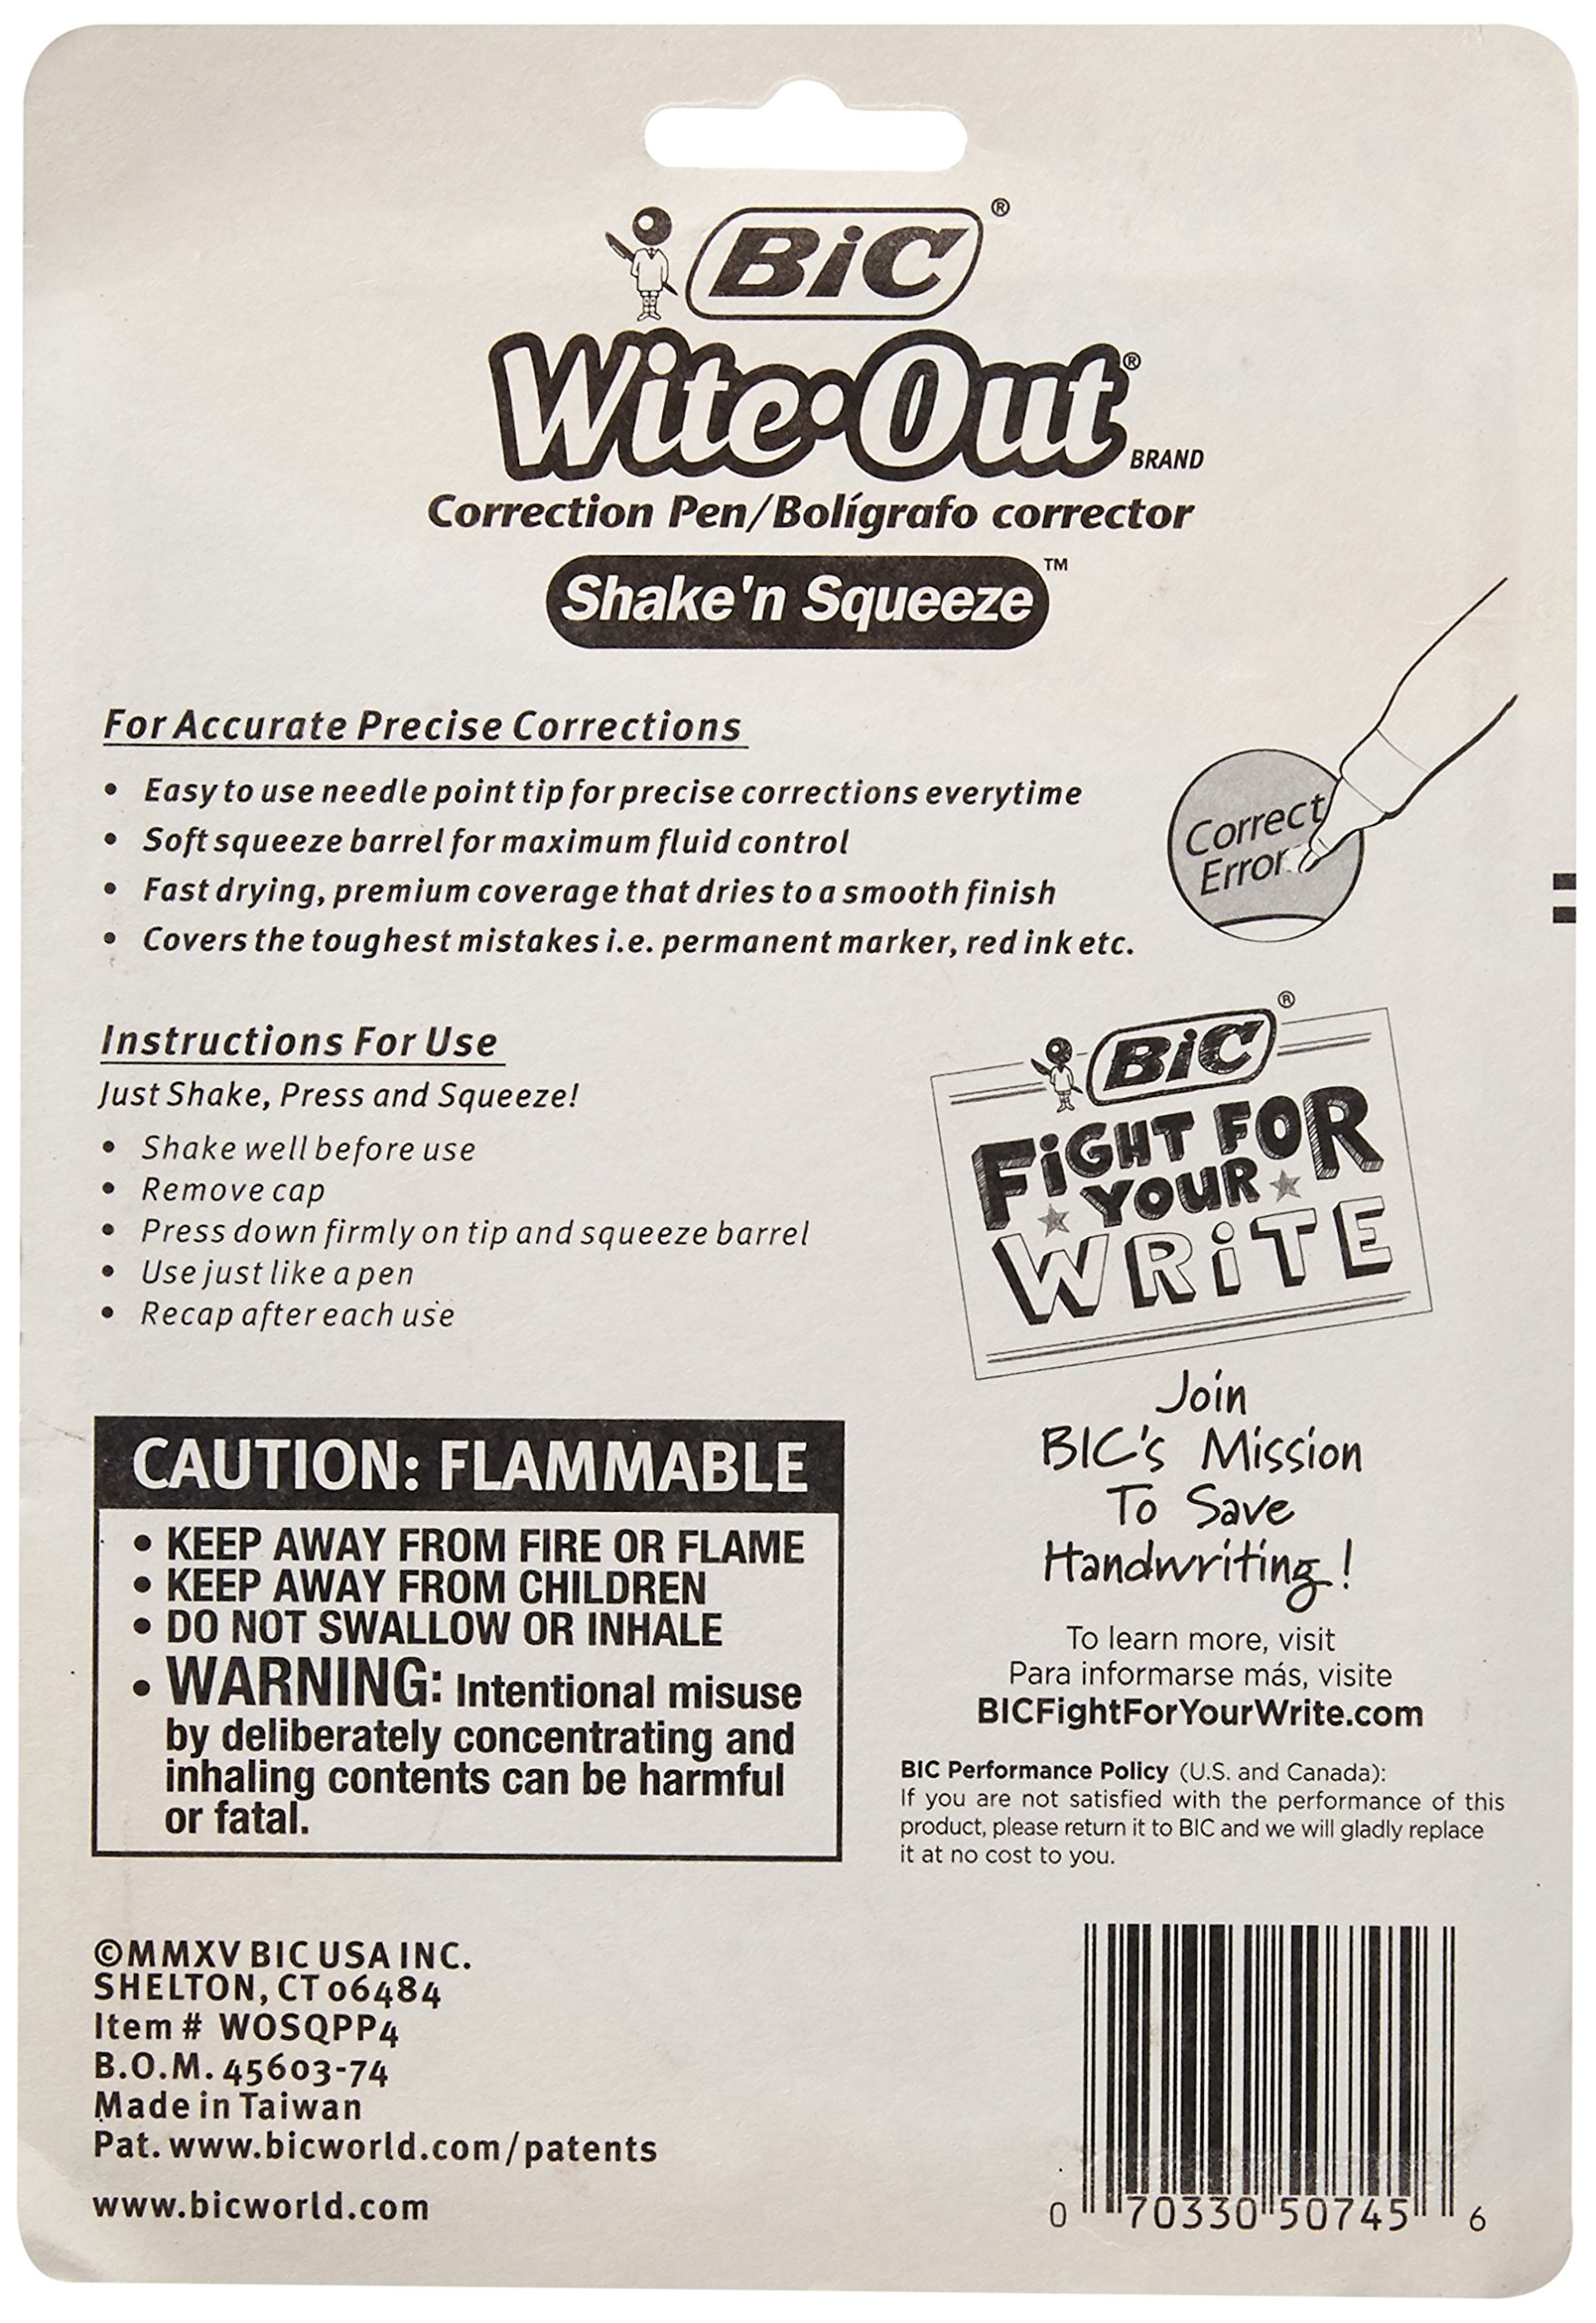 BIC Wite-Out Shake 'n Squeeze Correction Pen, 8 ml, White, 4/Pack (WOSQPP418) by BIC (Image #2)